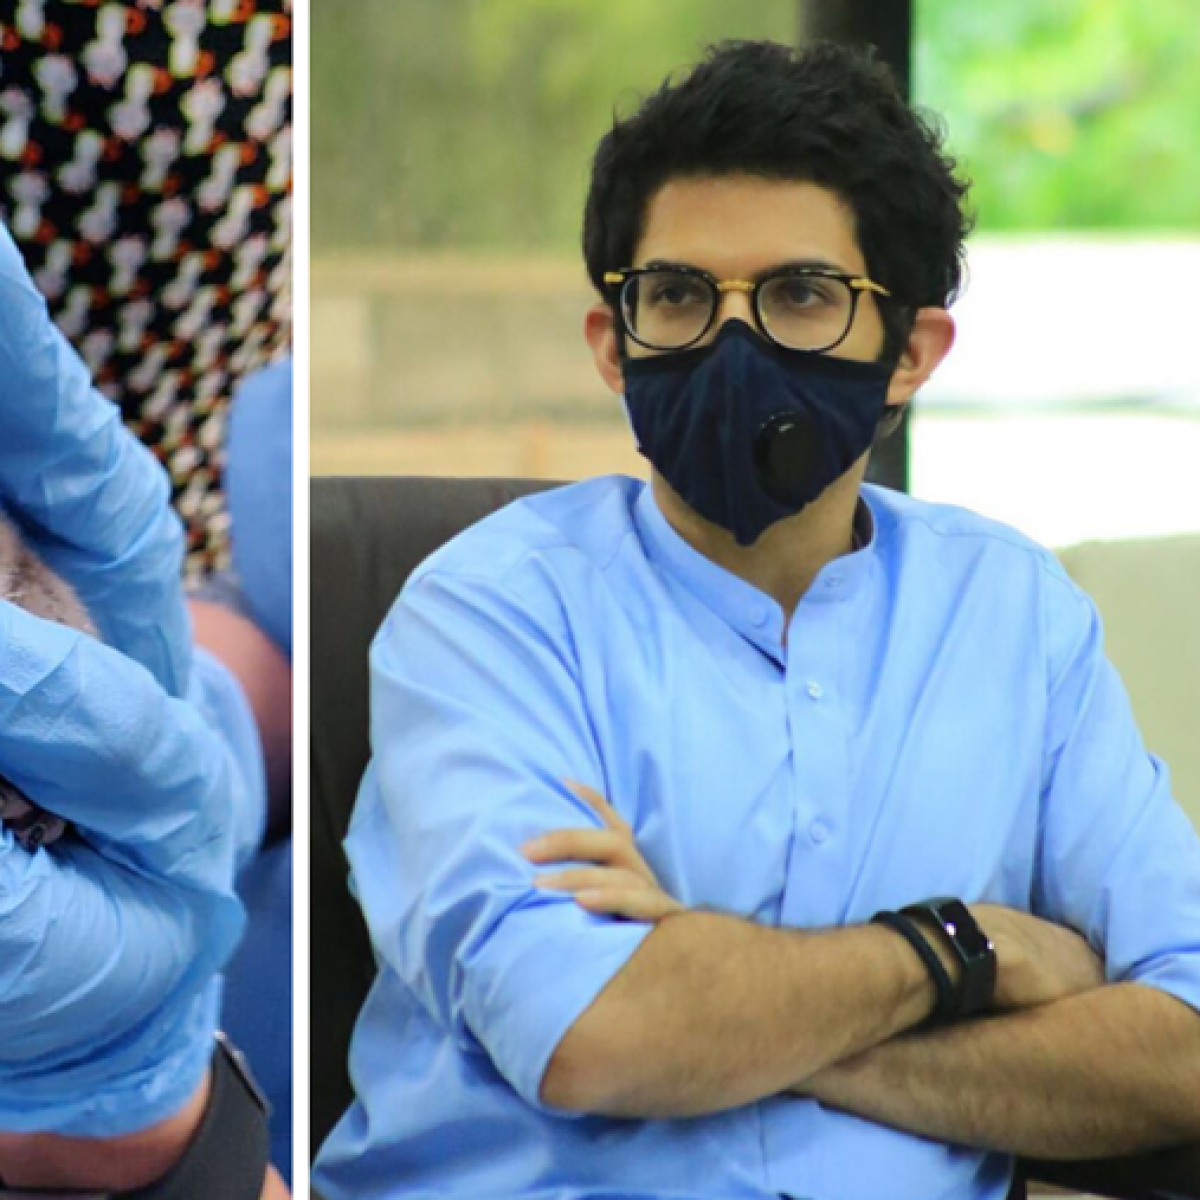 'But Modi is fascist': Twitter reacts to man being booked for calling Aaditya Thackeray 'baby penguin'